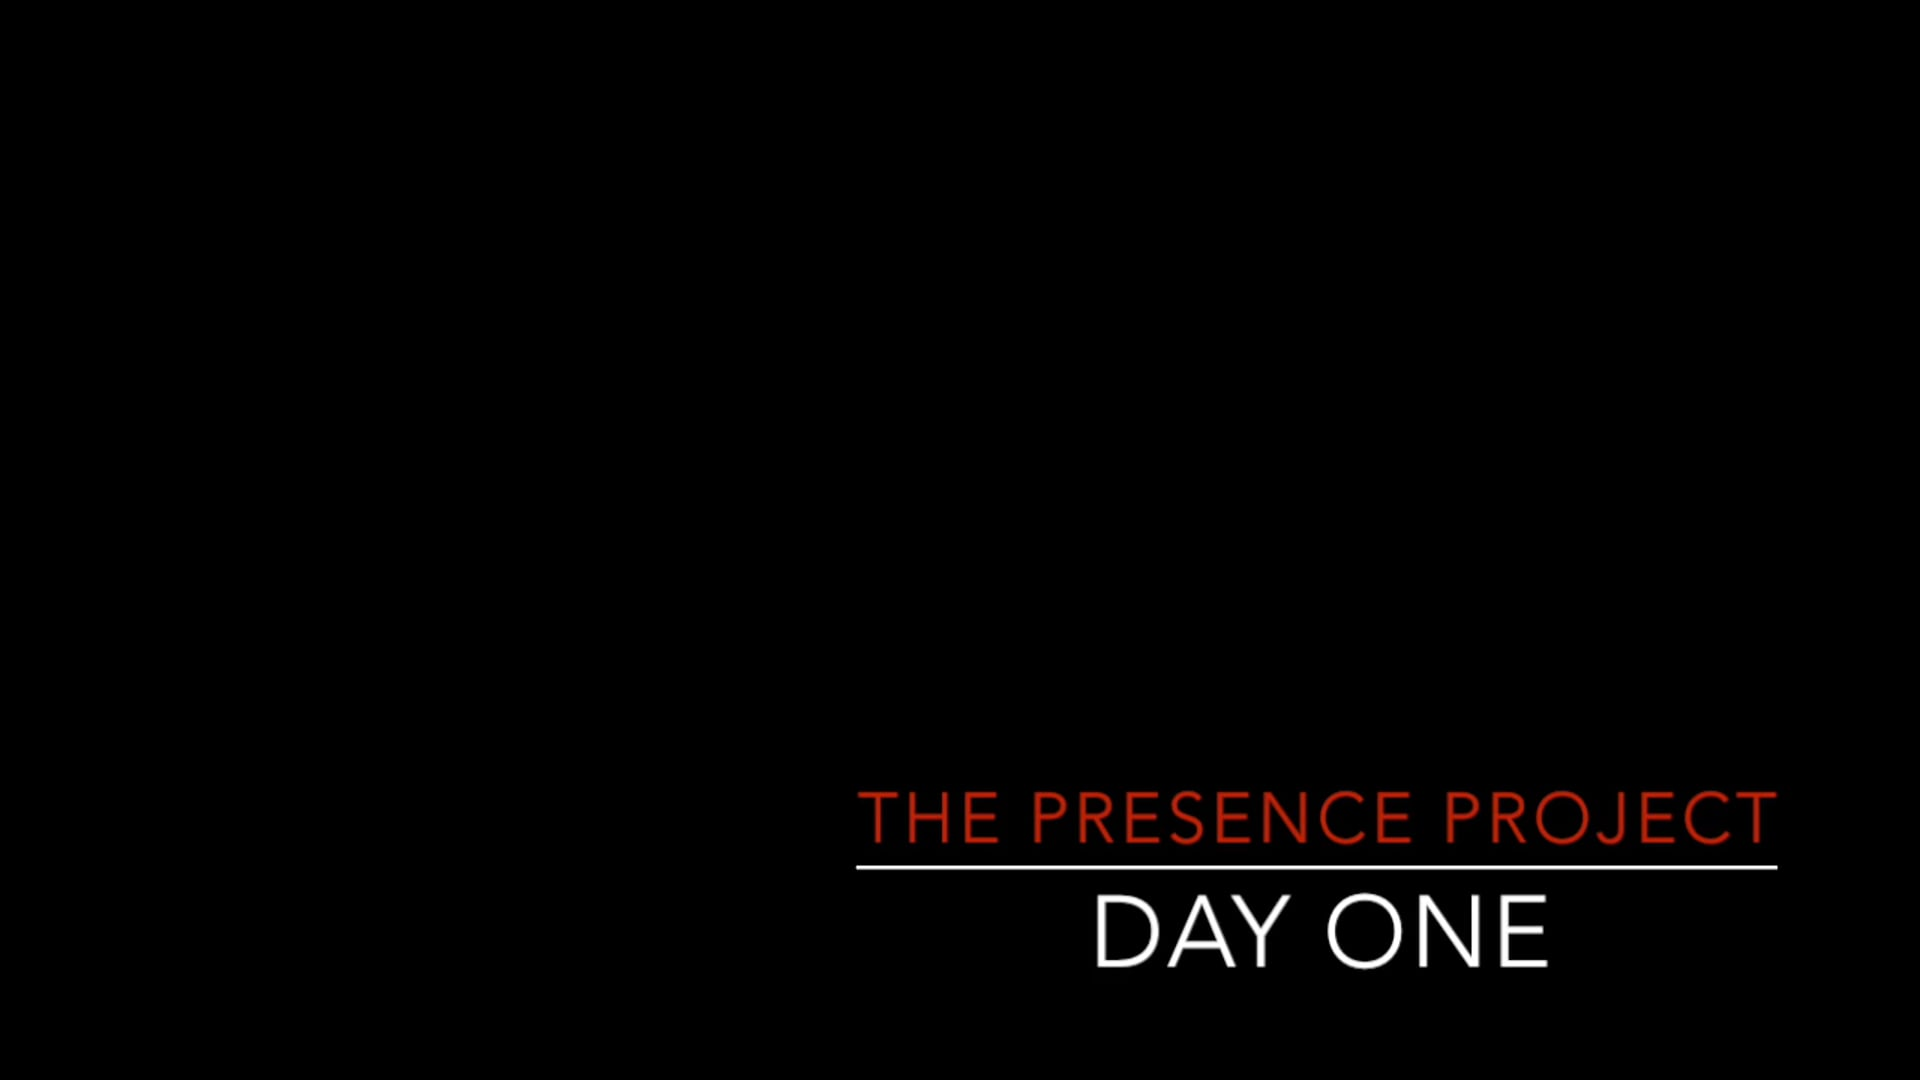 Presence Project, Day 1